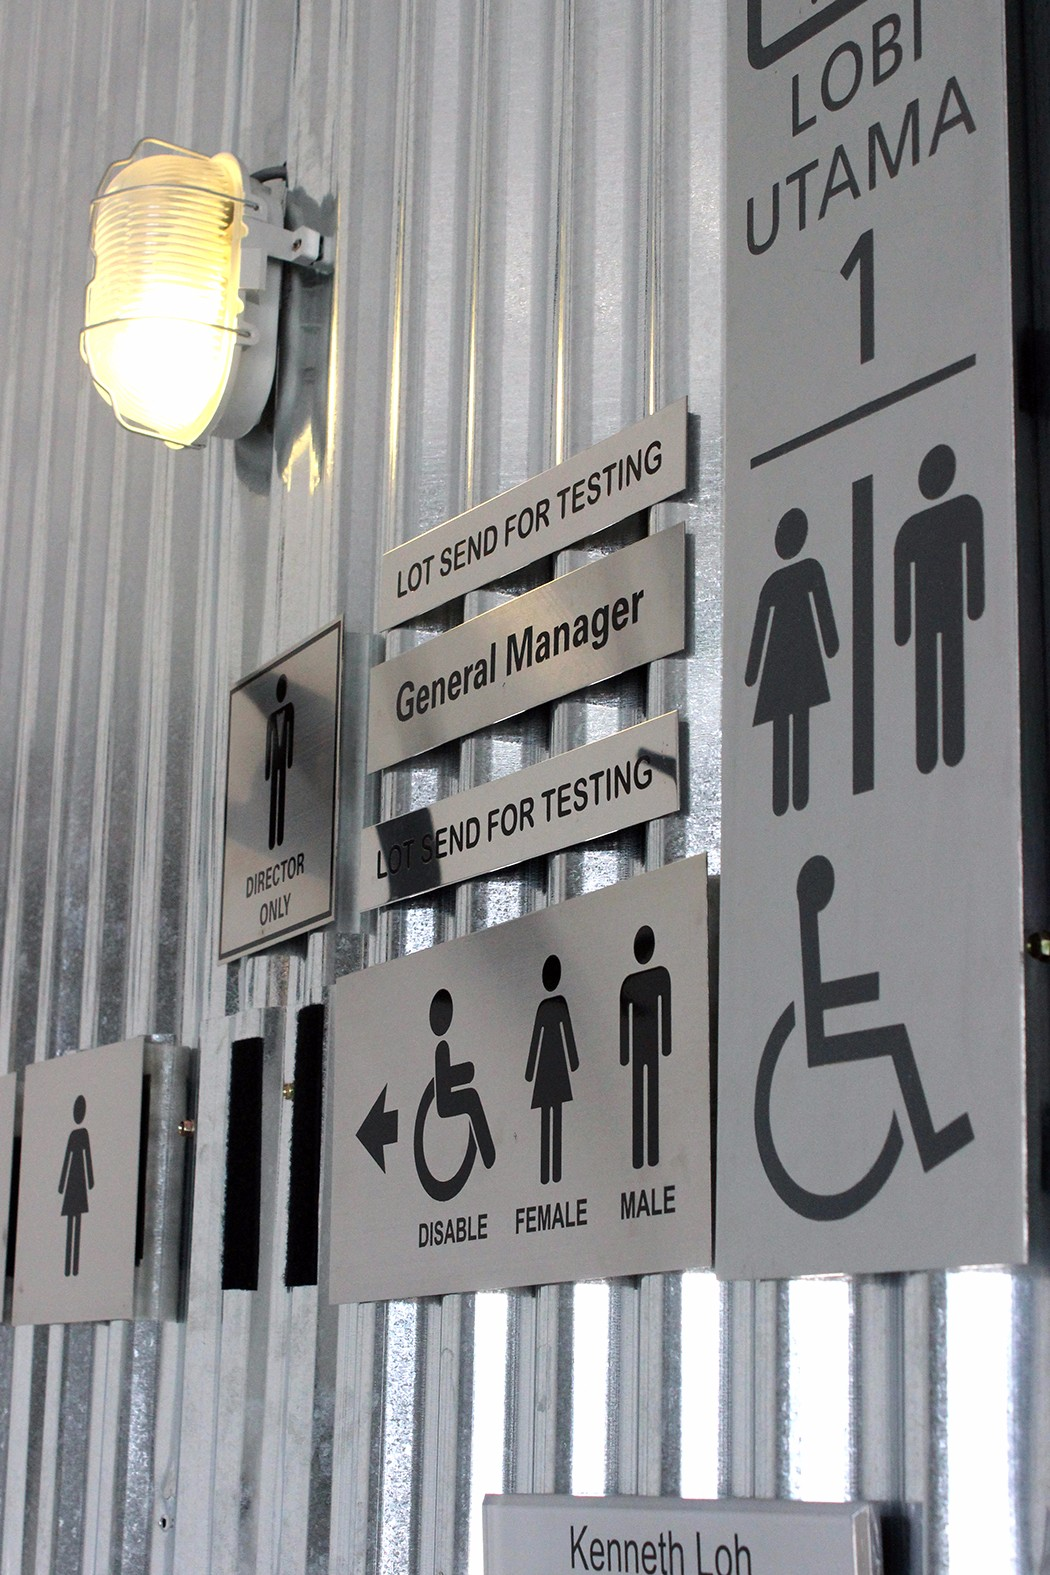 Stainless Steel Etching Toilet Sign